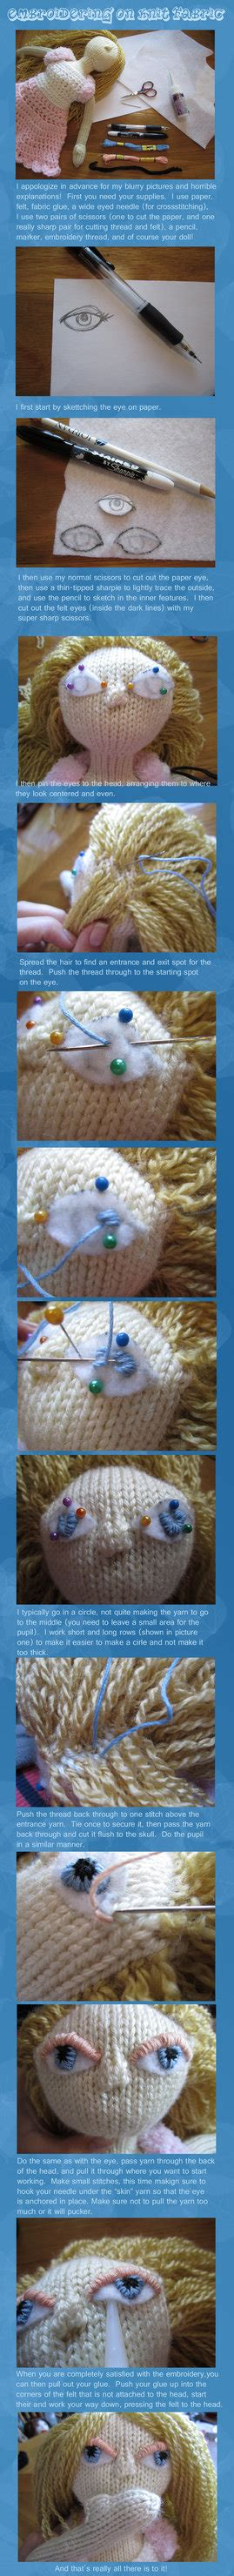 how to embroider on knit fabric tutorial embroidering on knit fabric by